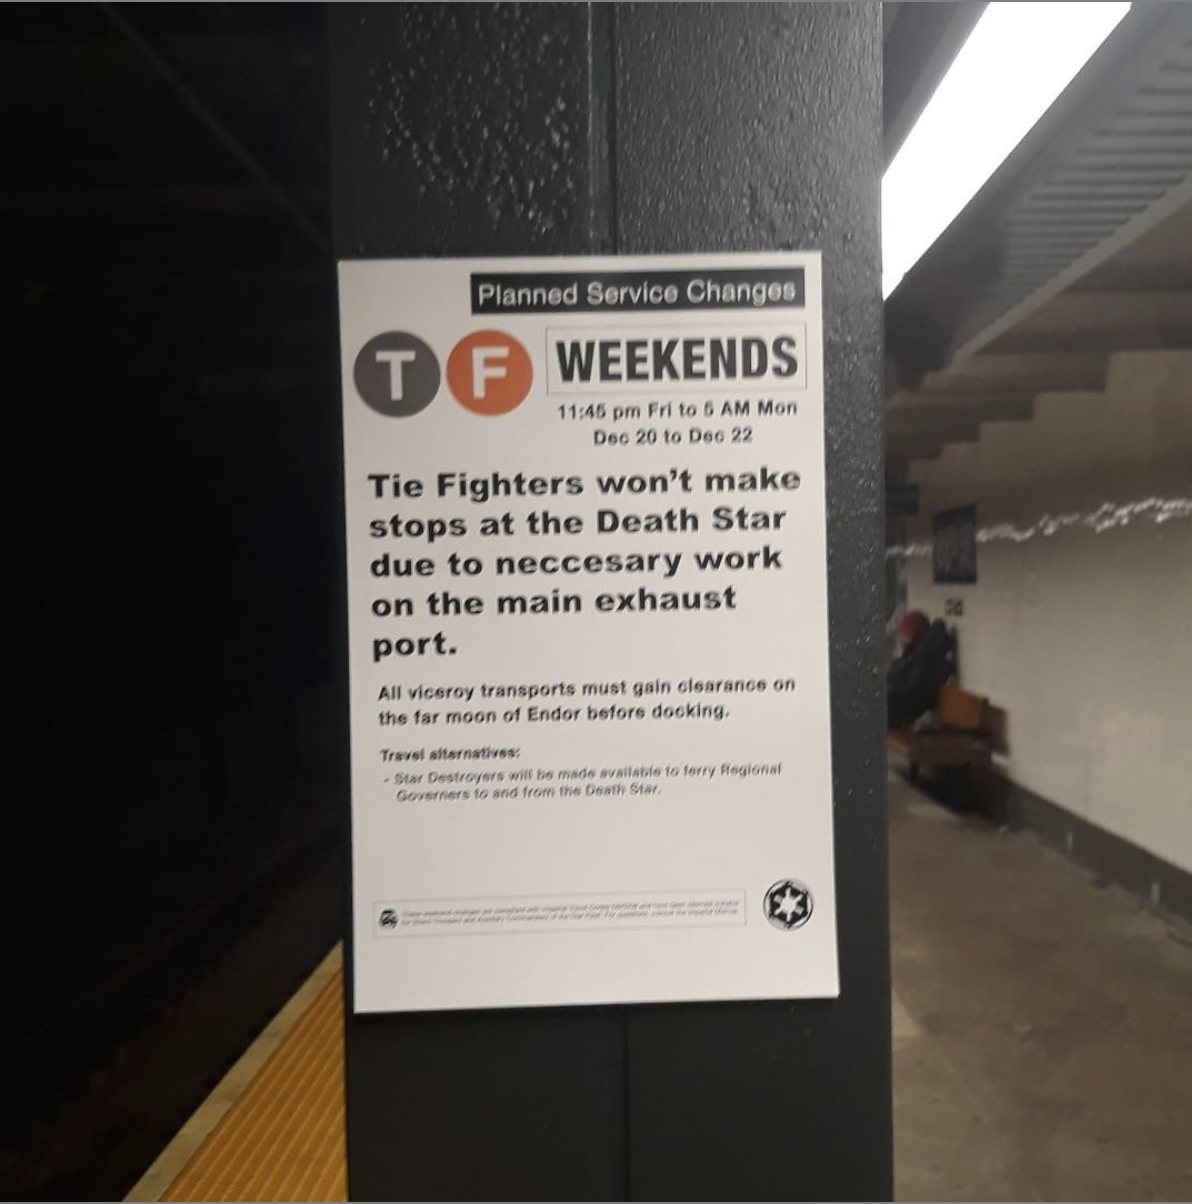 poster inside of an MTA subway station relating service changes to the Star Wars films